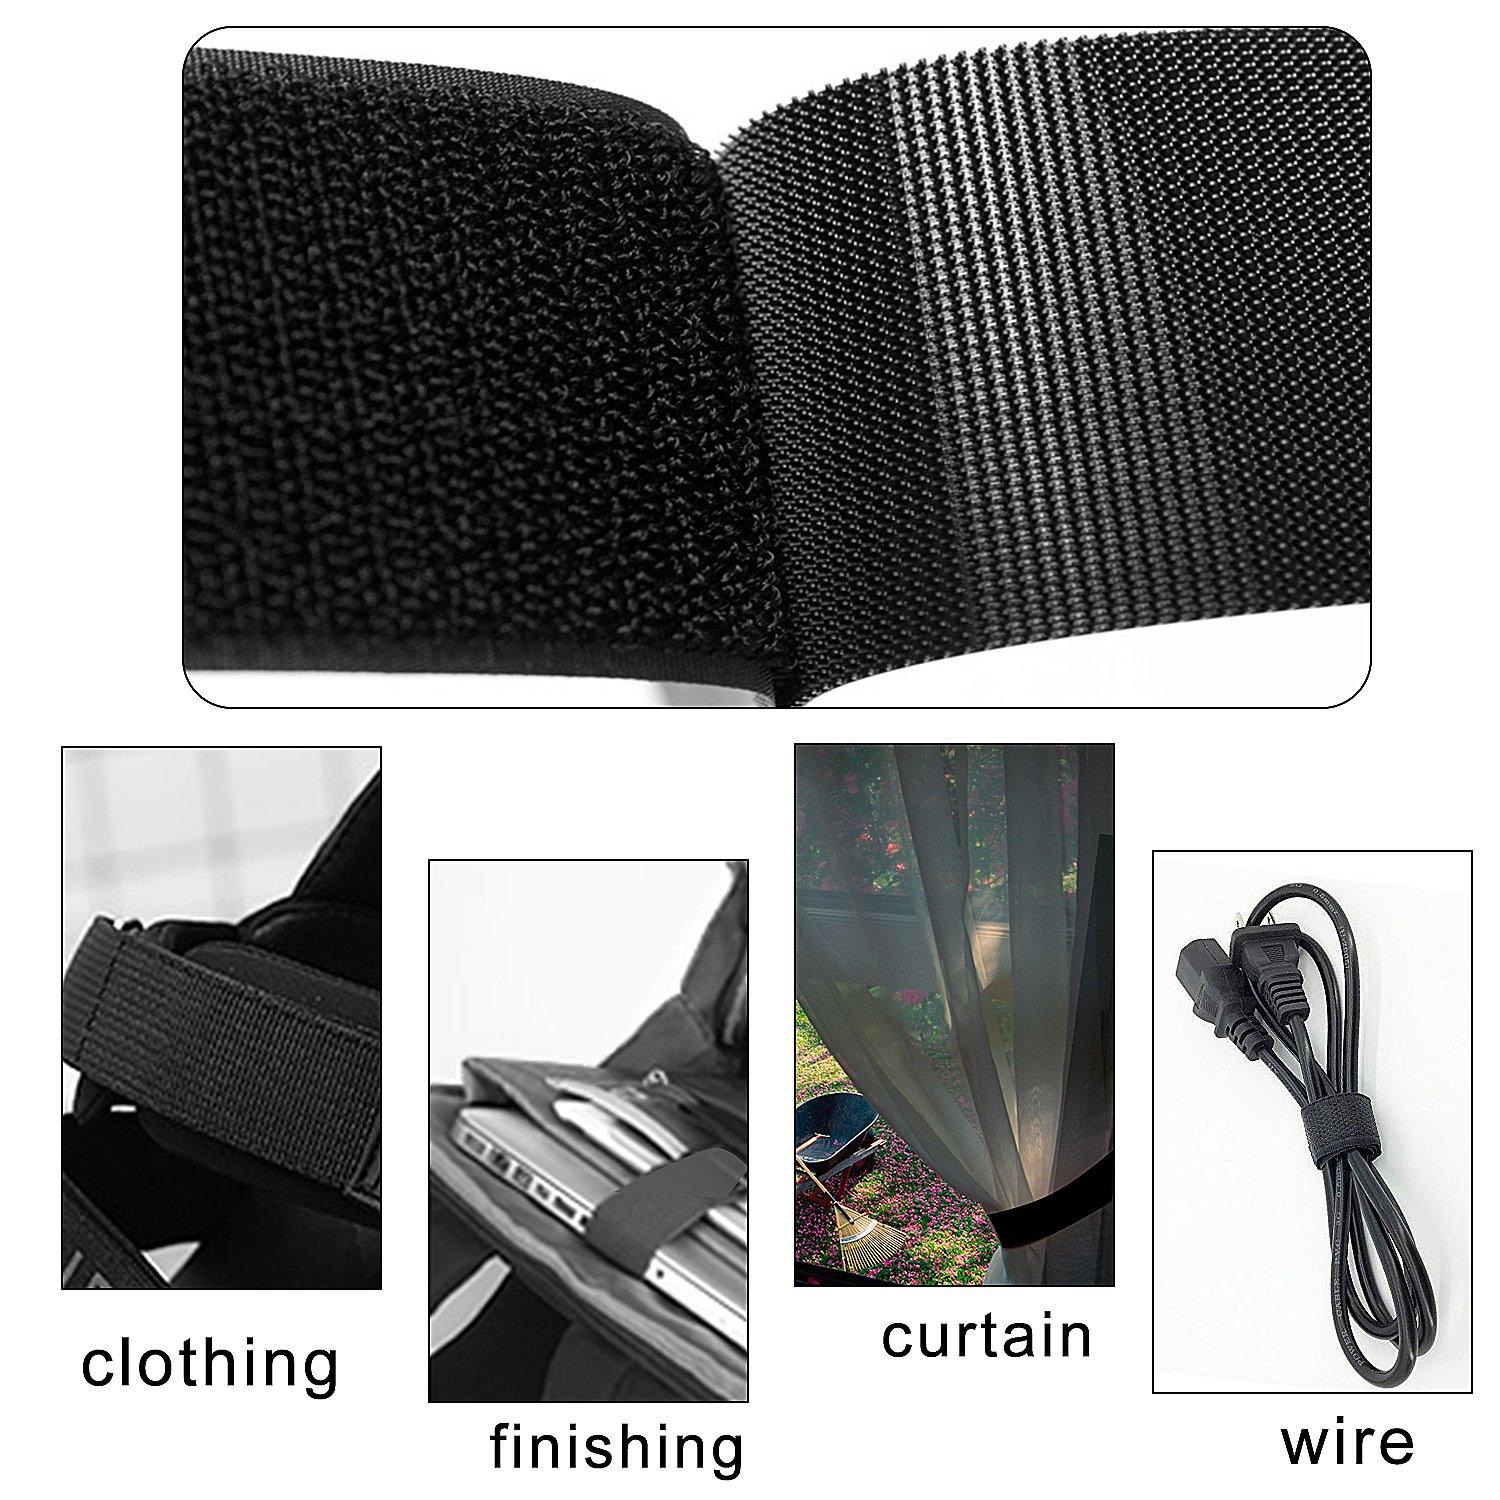 Outee 100 Pcs Cable Straps Cable Ties Reusable 11//6//5 Inch Fastening Wire Organizer Cord Management for Home Office